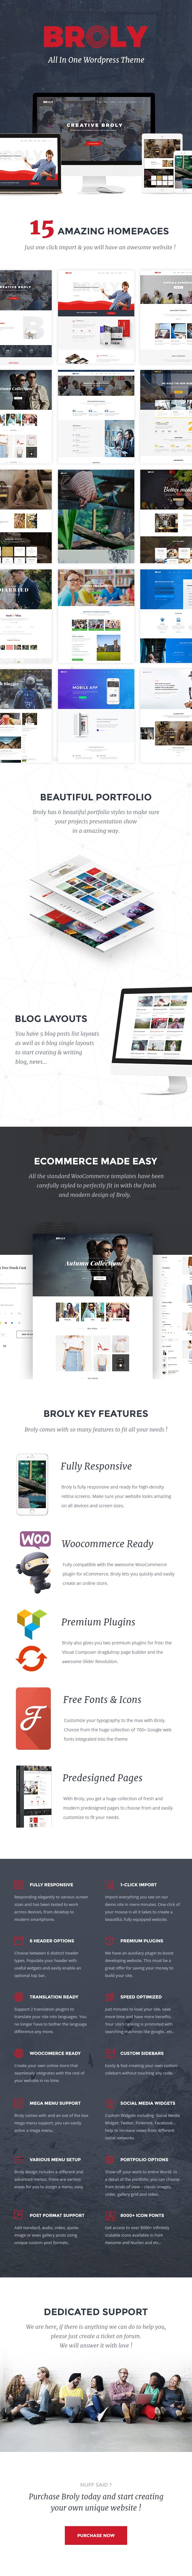 Broly - Creative Multi-Concept WordPress Theme - 2